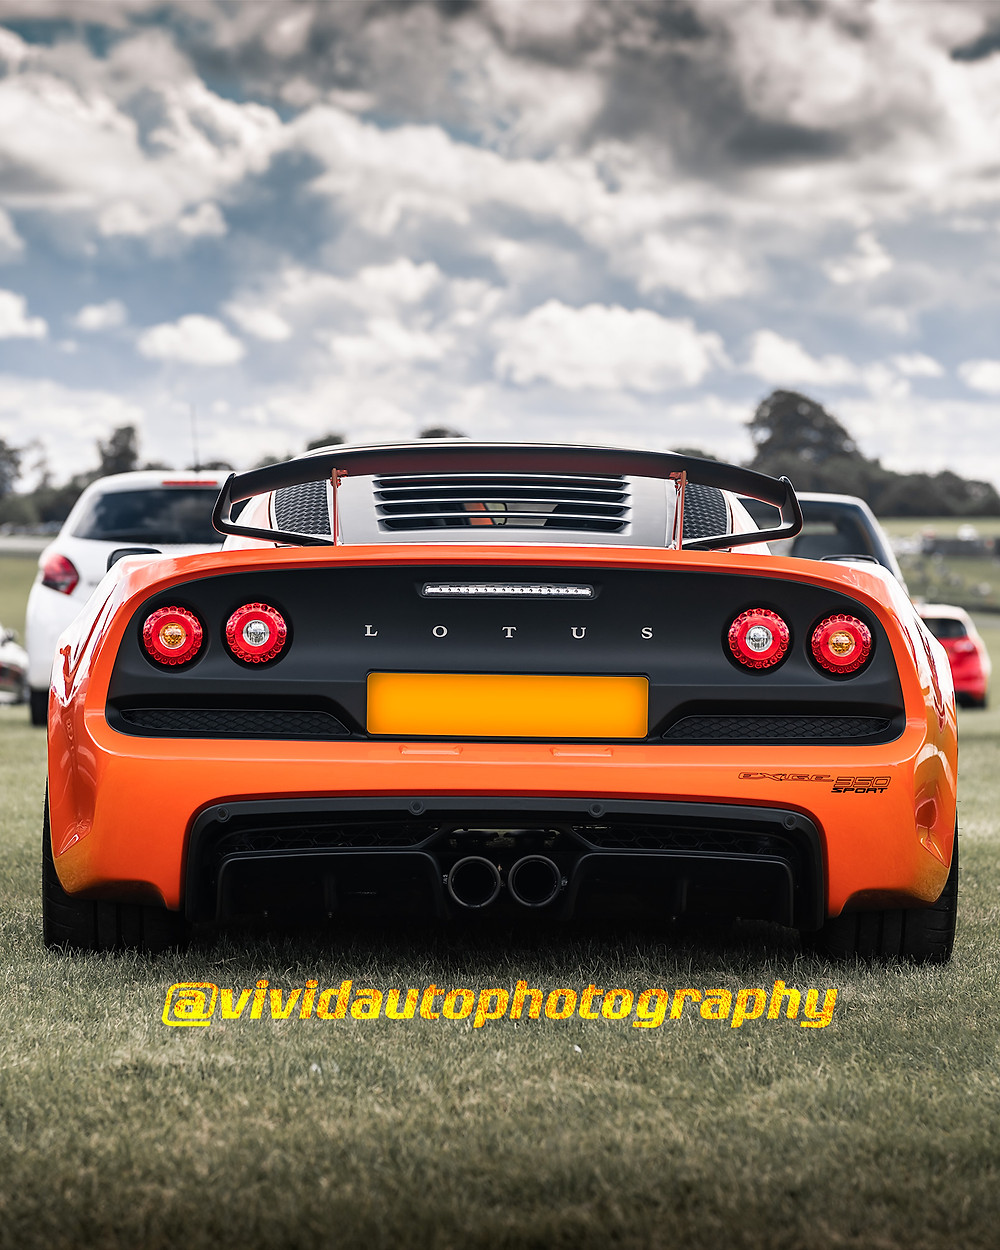 Lotus Exige Sport 350 | Signature Orange | Rear poster